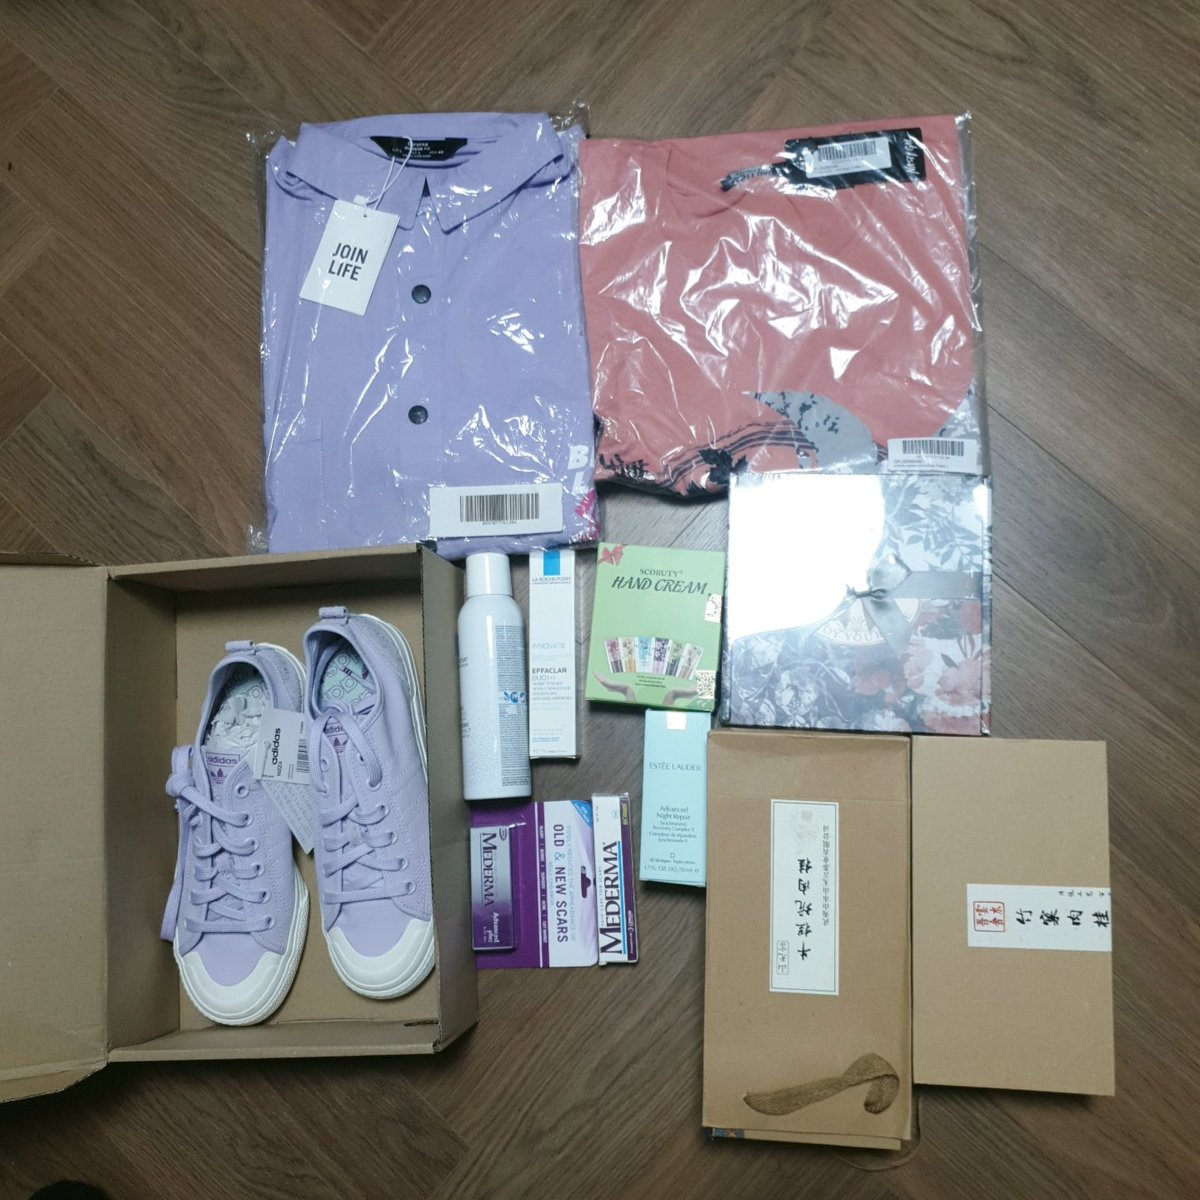 Profit - Thanks for the bday presents!🥰